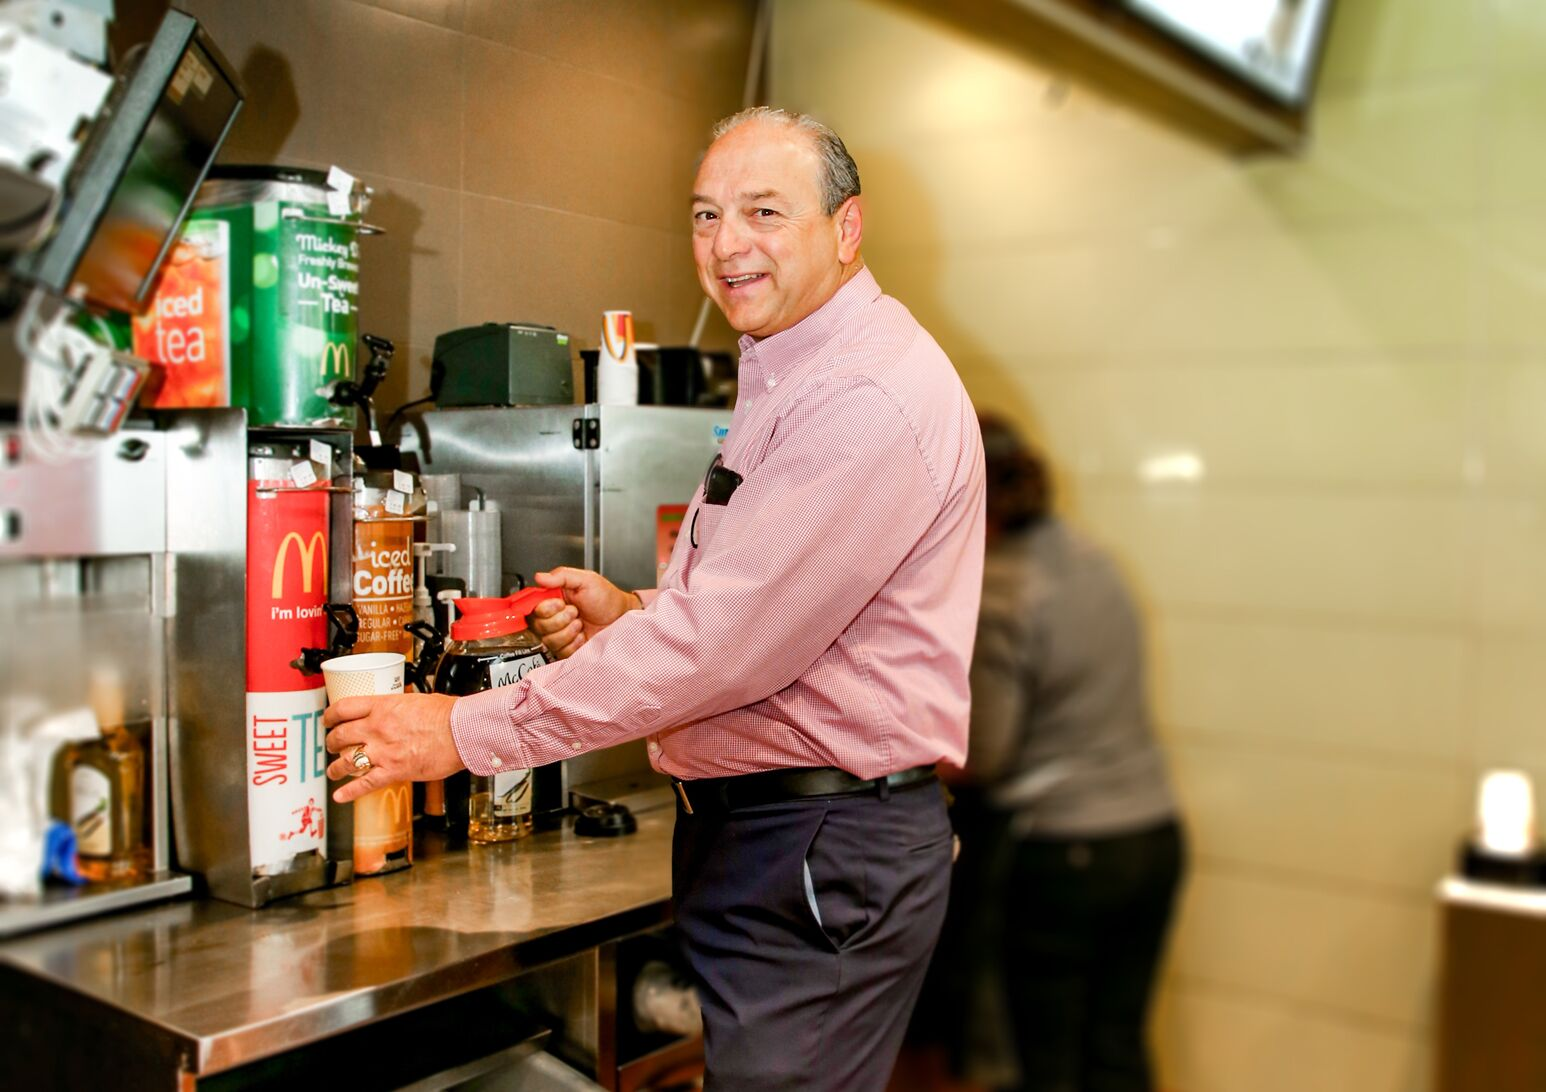 Gerald Laurino serving coffee at his McDonald's